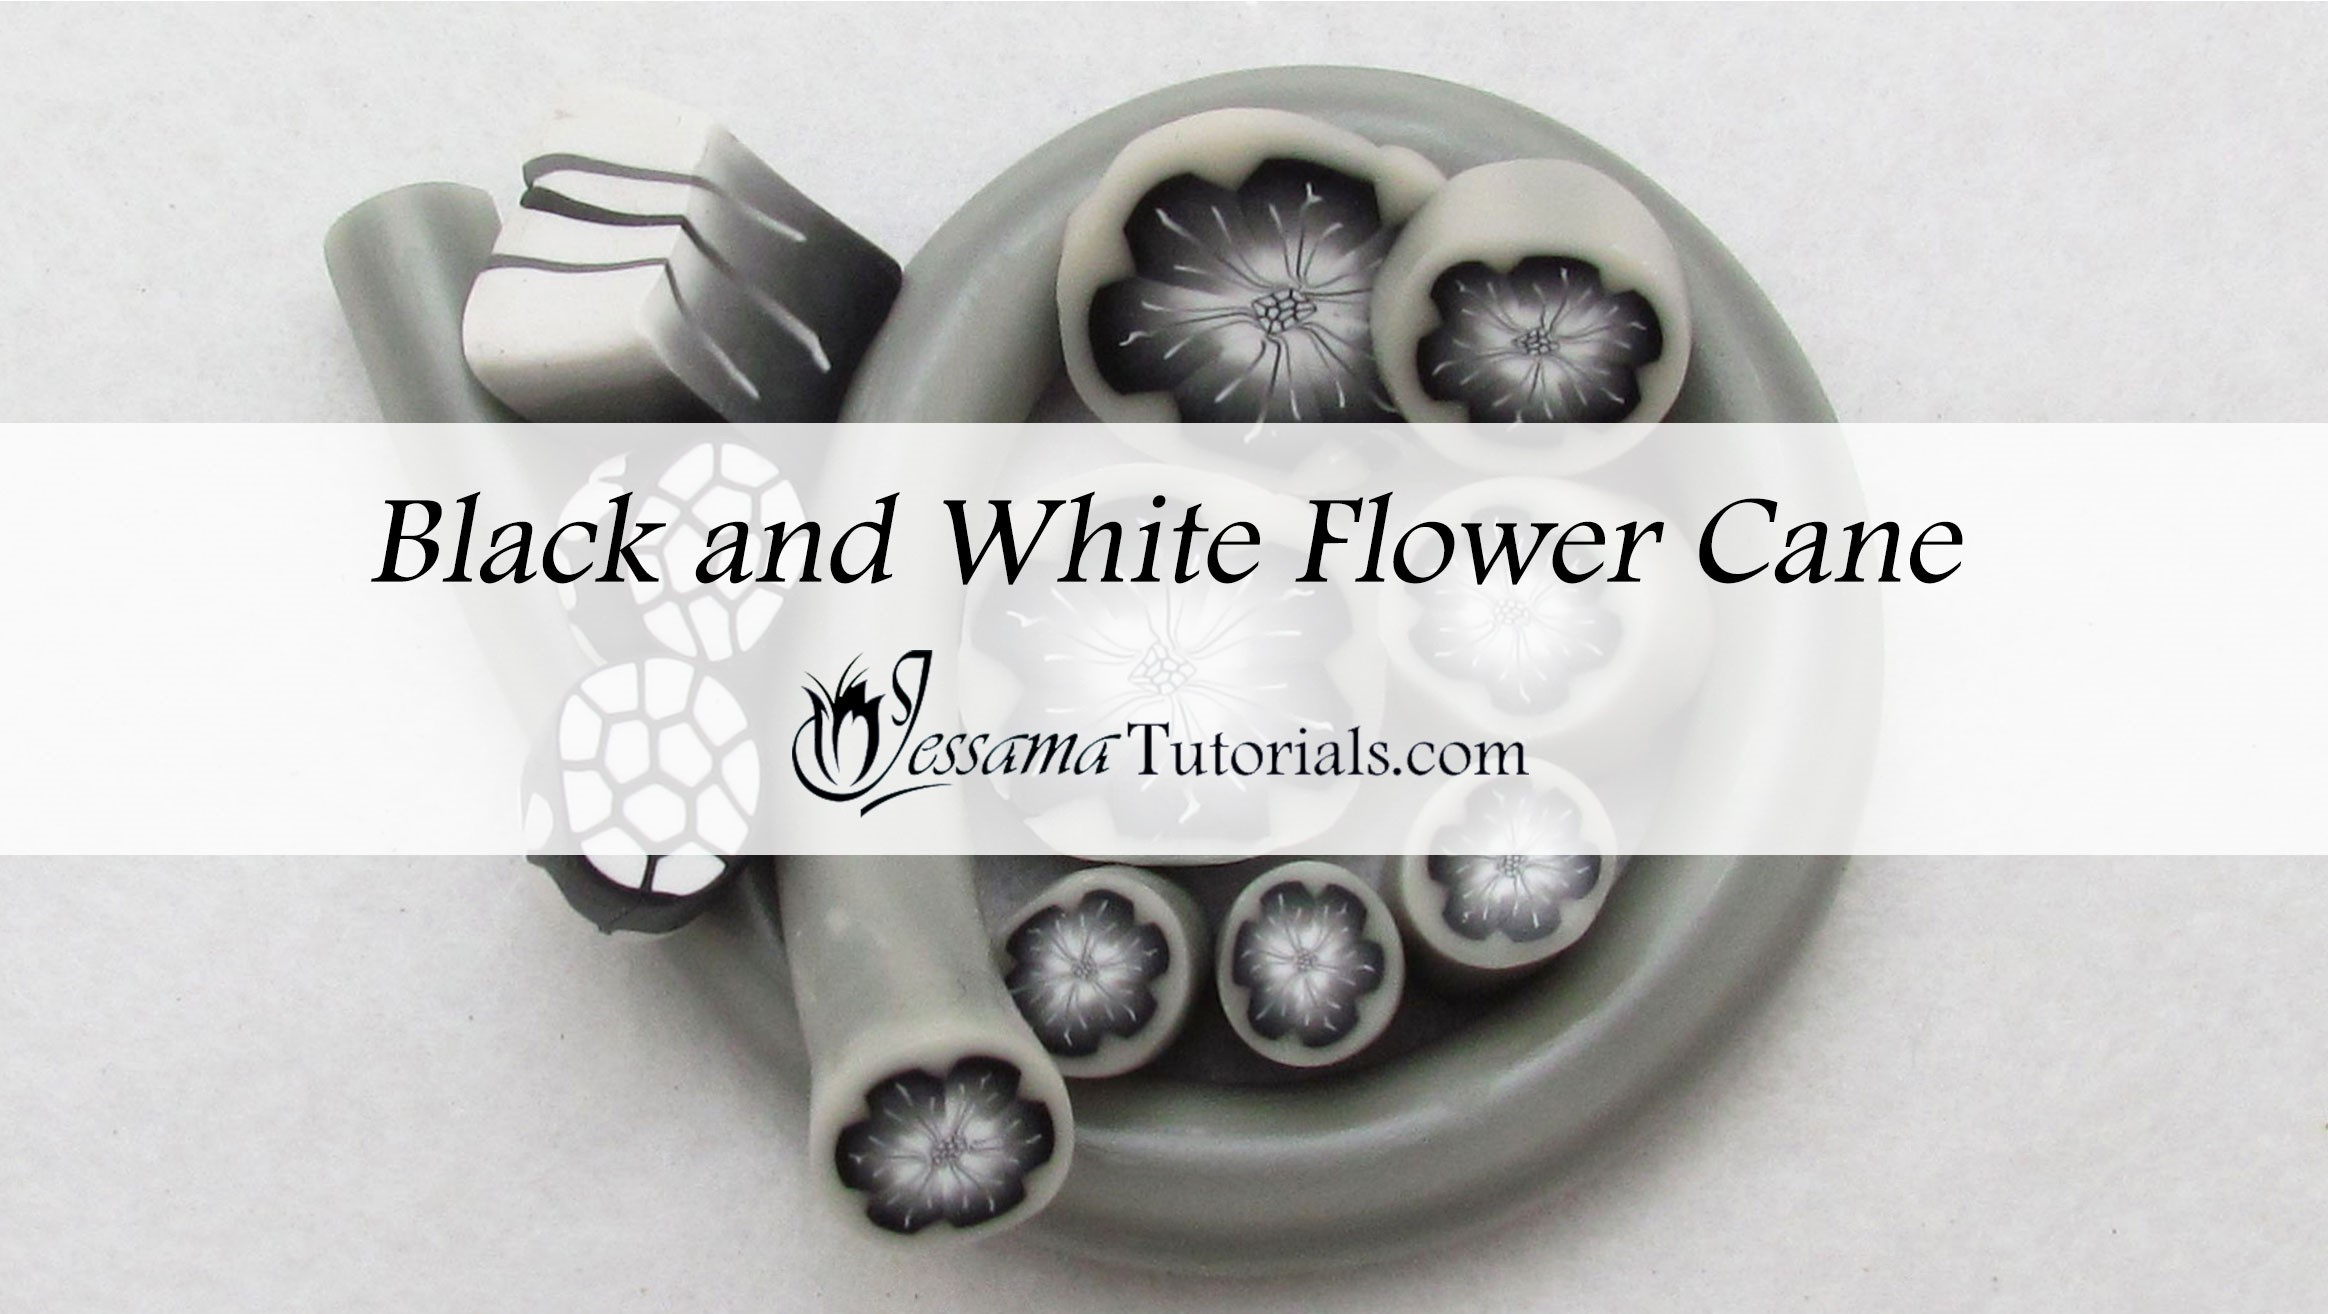 Black and white polymer clay flower canes